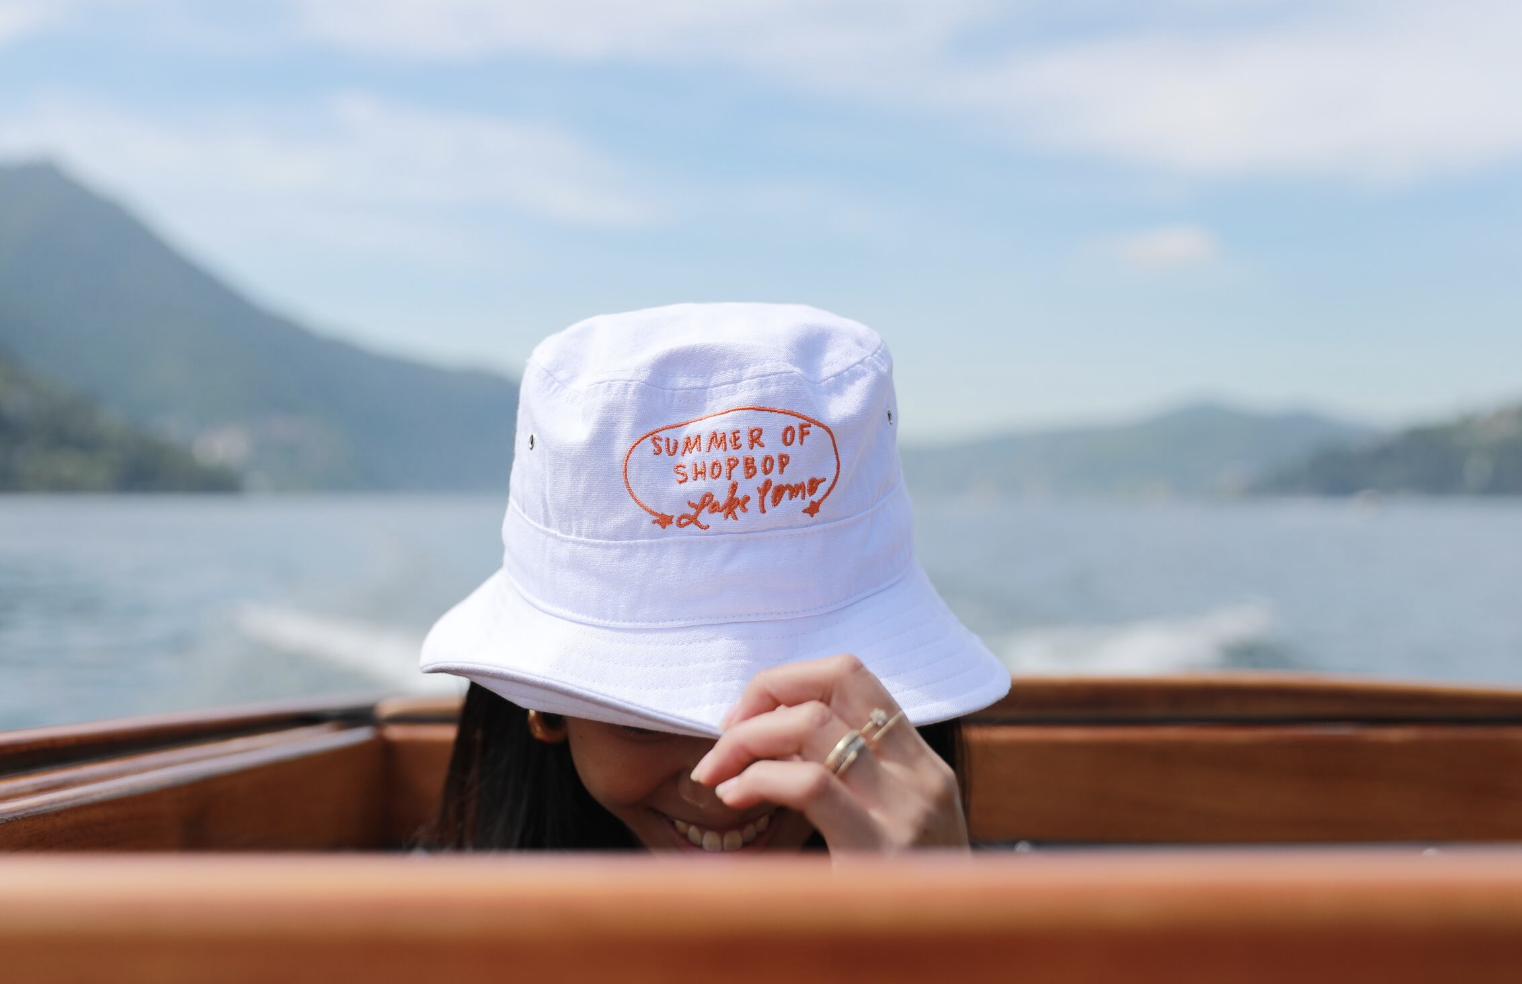 Check out these bucket hats we put together for ShopBop!